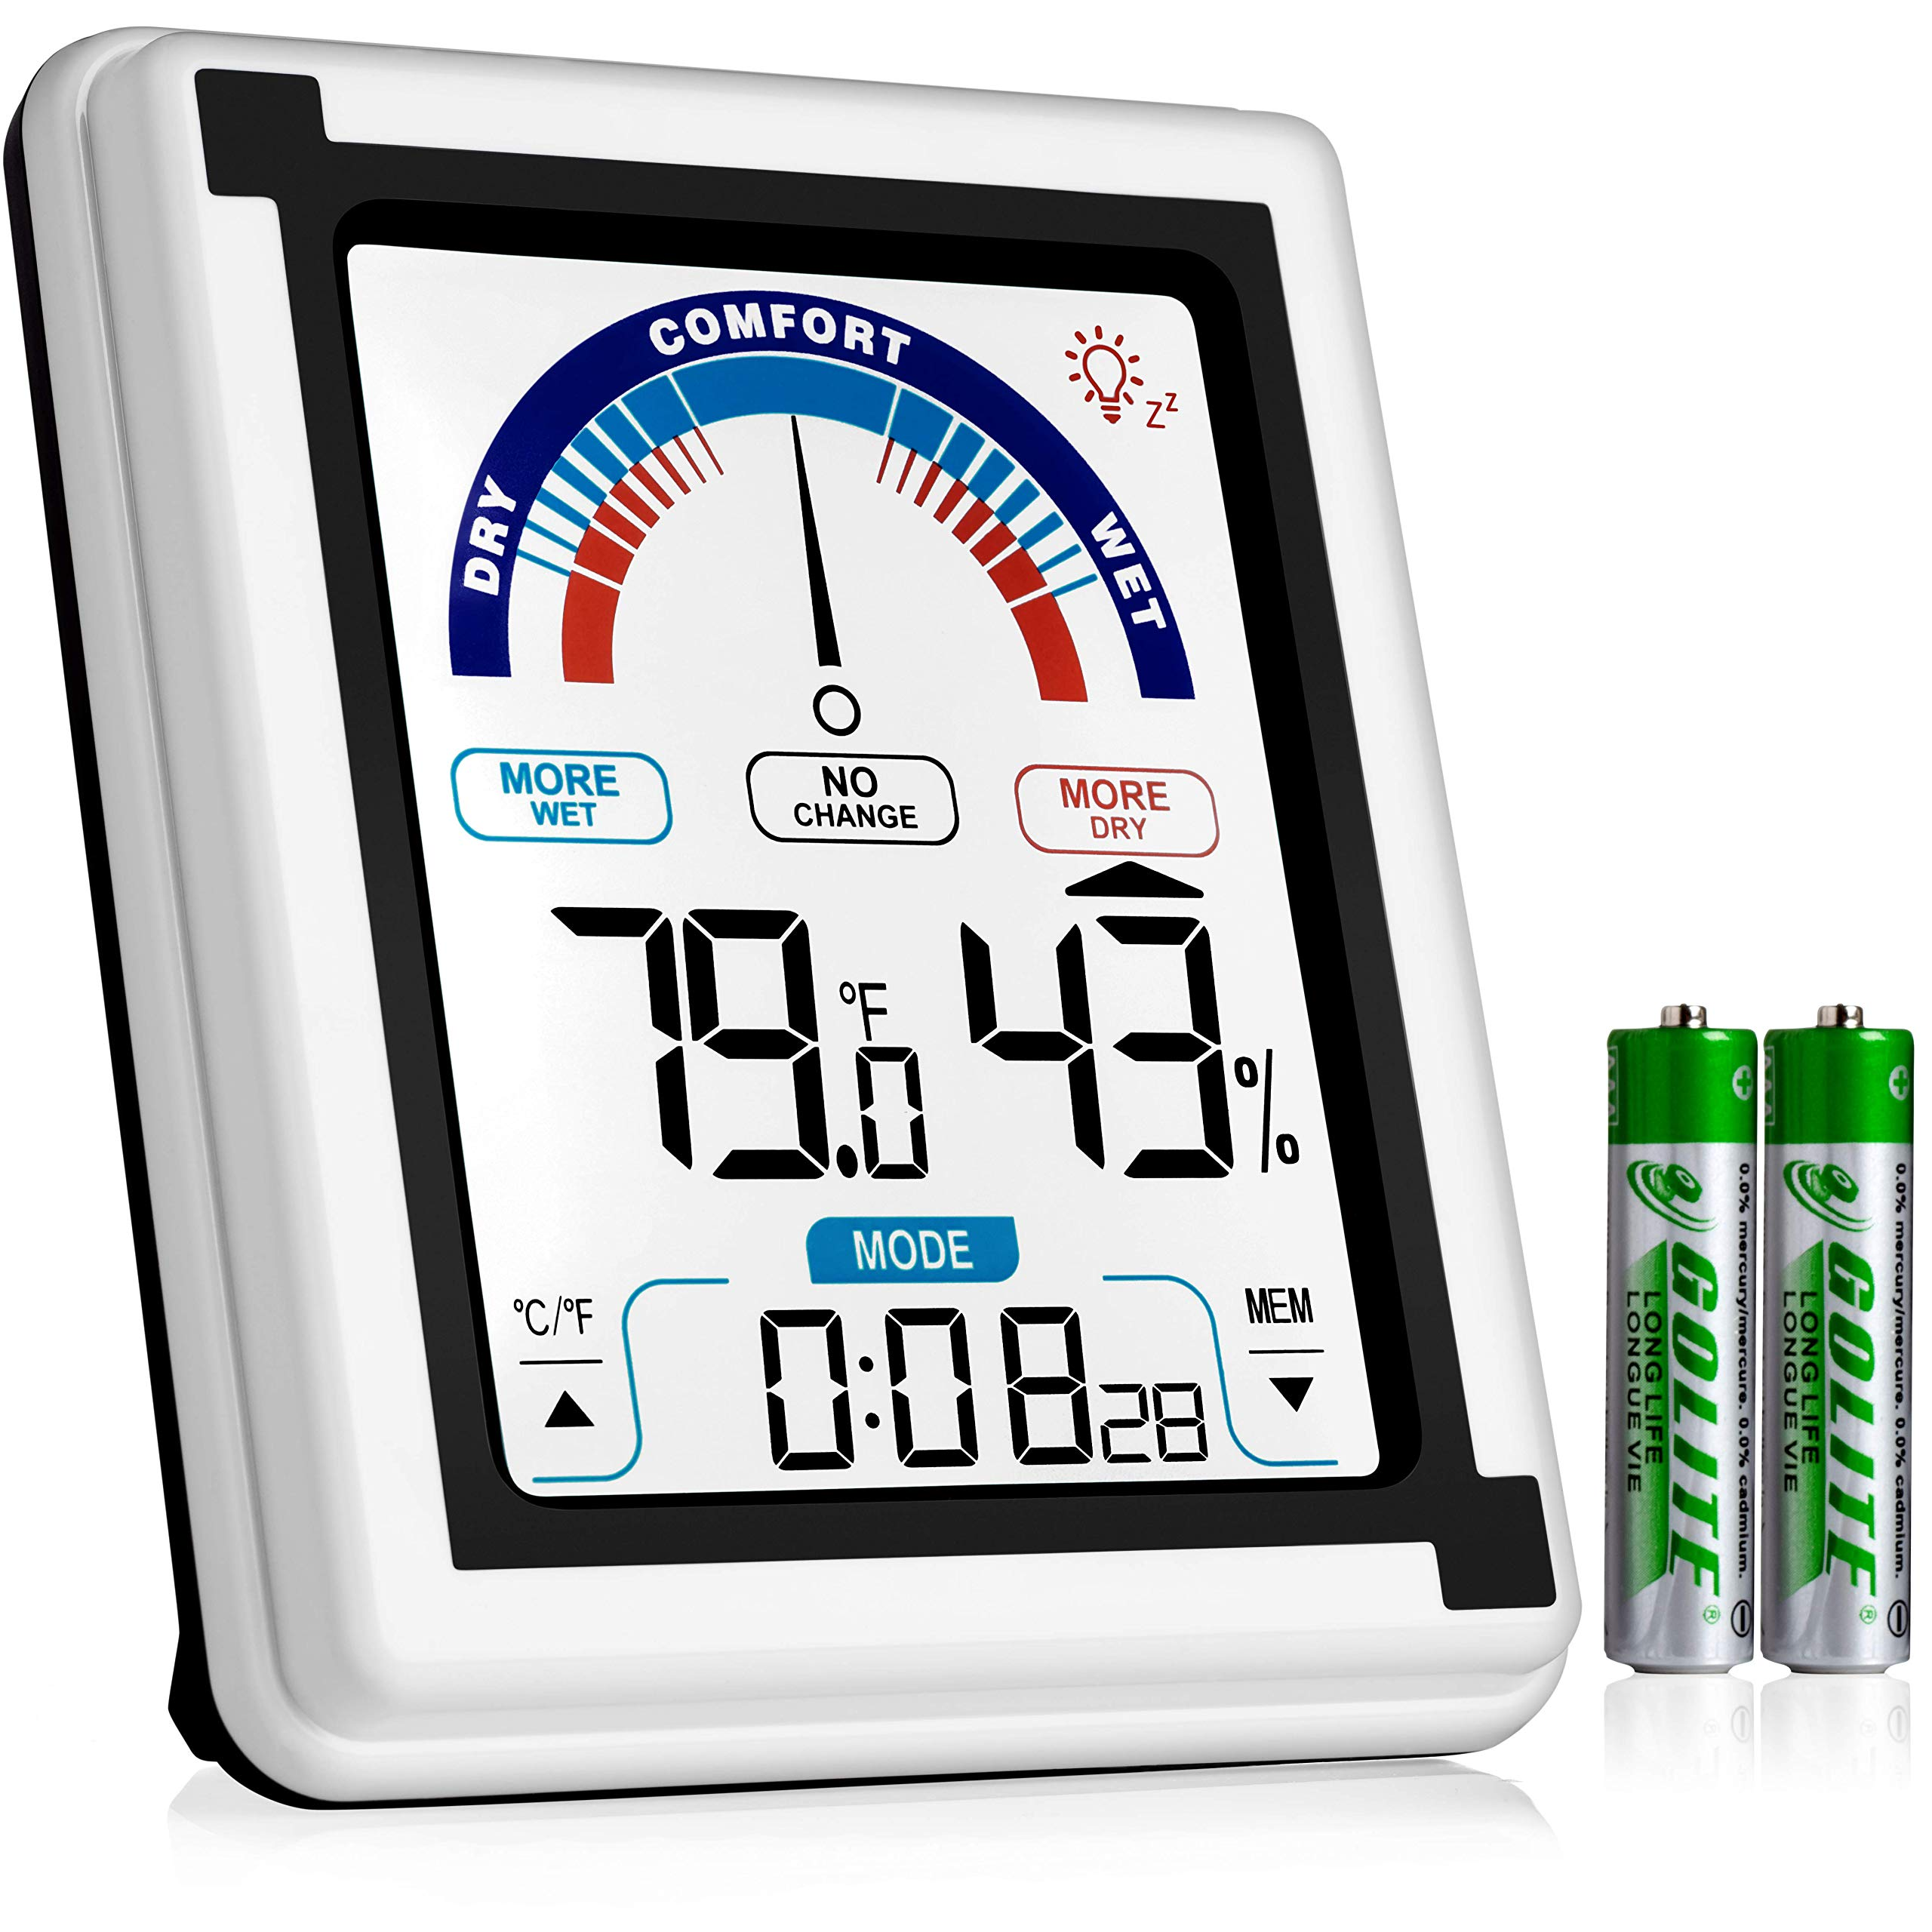 Eccostar High Accuracy Digital Hygrometer, Indoor Room Thermometer and Humidity Gauge Meter with Digital Alarm Clock, Large LCD Touchscreen with Backlight, Room Temperature Monitor by Eccostar